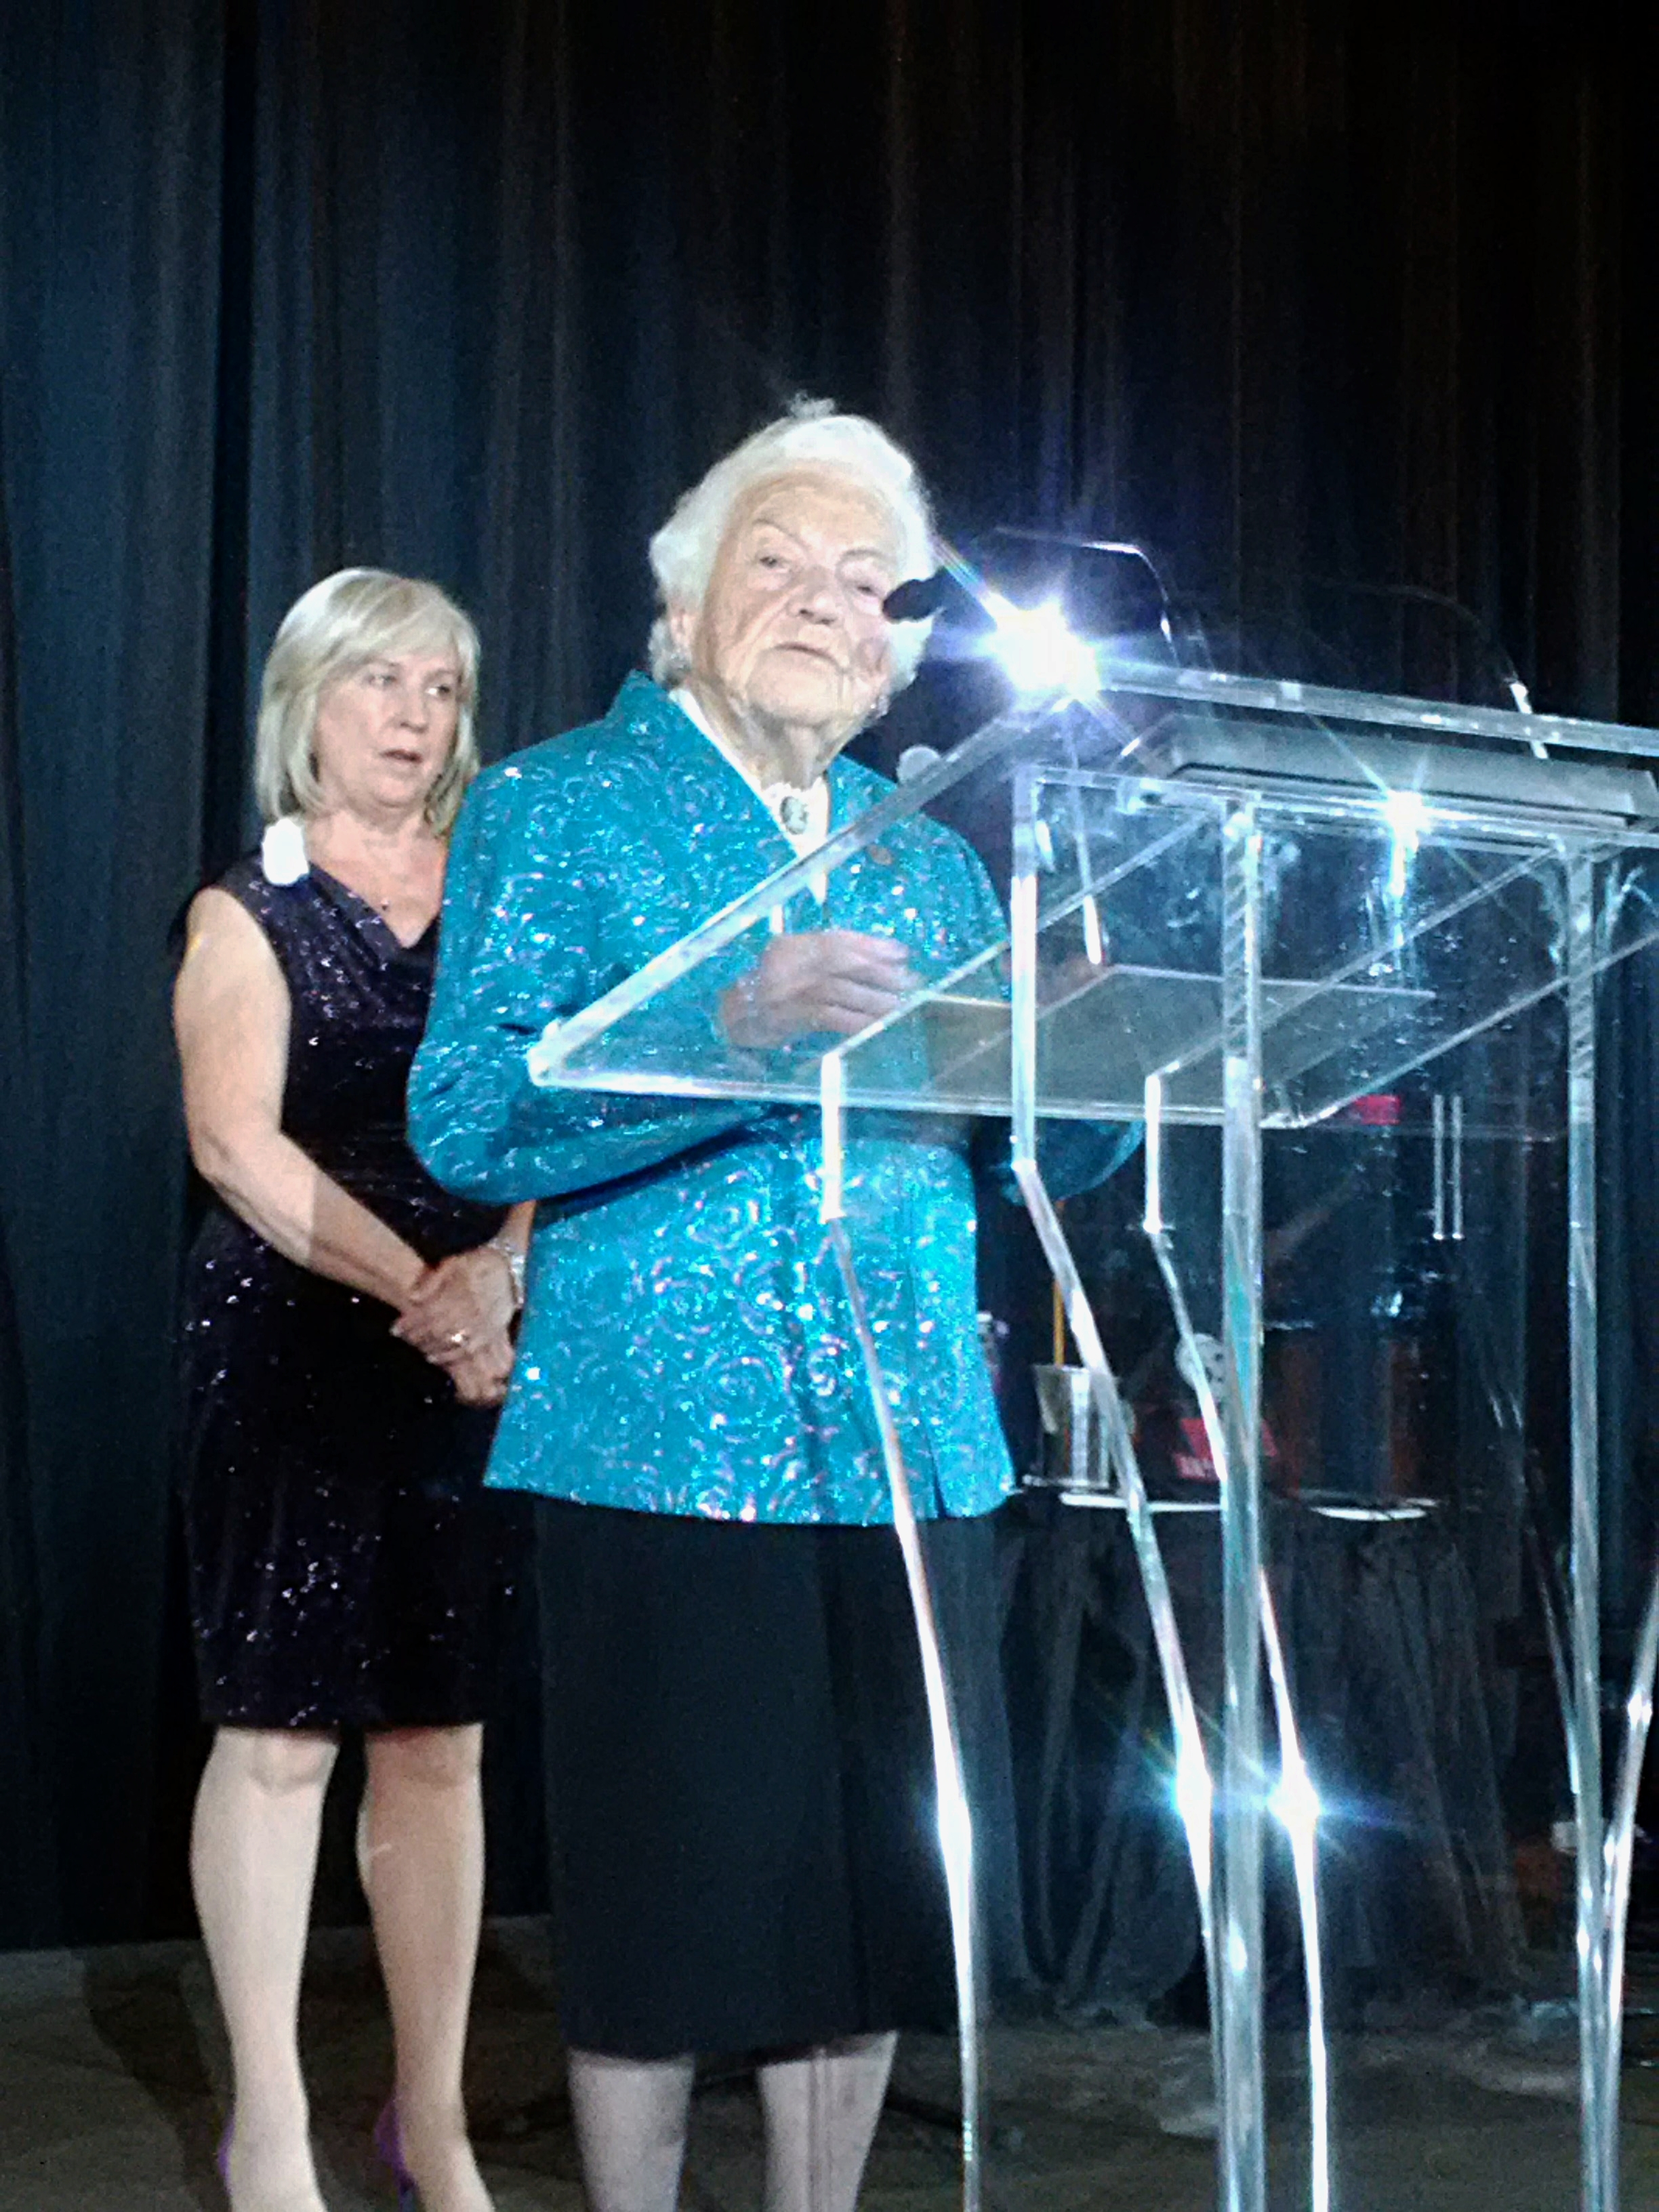 Hurricane Hazel McCallion  reflects on her initiatives that got the Mississauga Arts Council going in her early days as Mayor; awed by the fabulous work and unprecedented cultural impact MAC and the community has accomplished to bring art & culture into our daily lives.